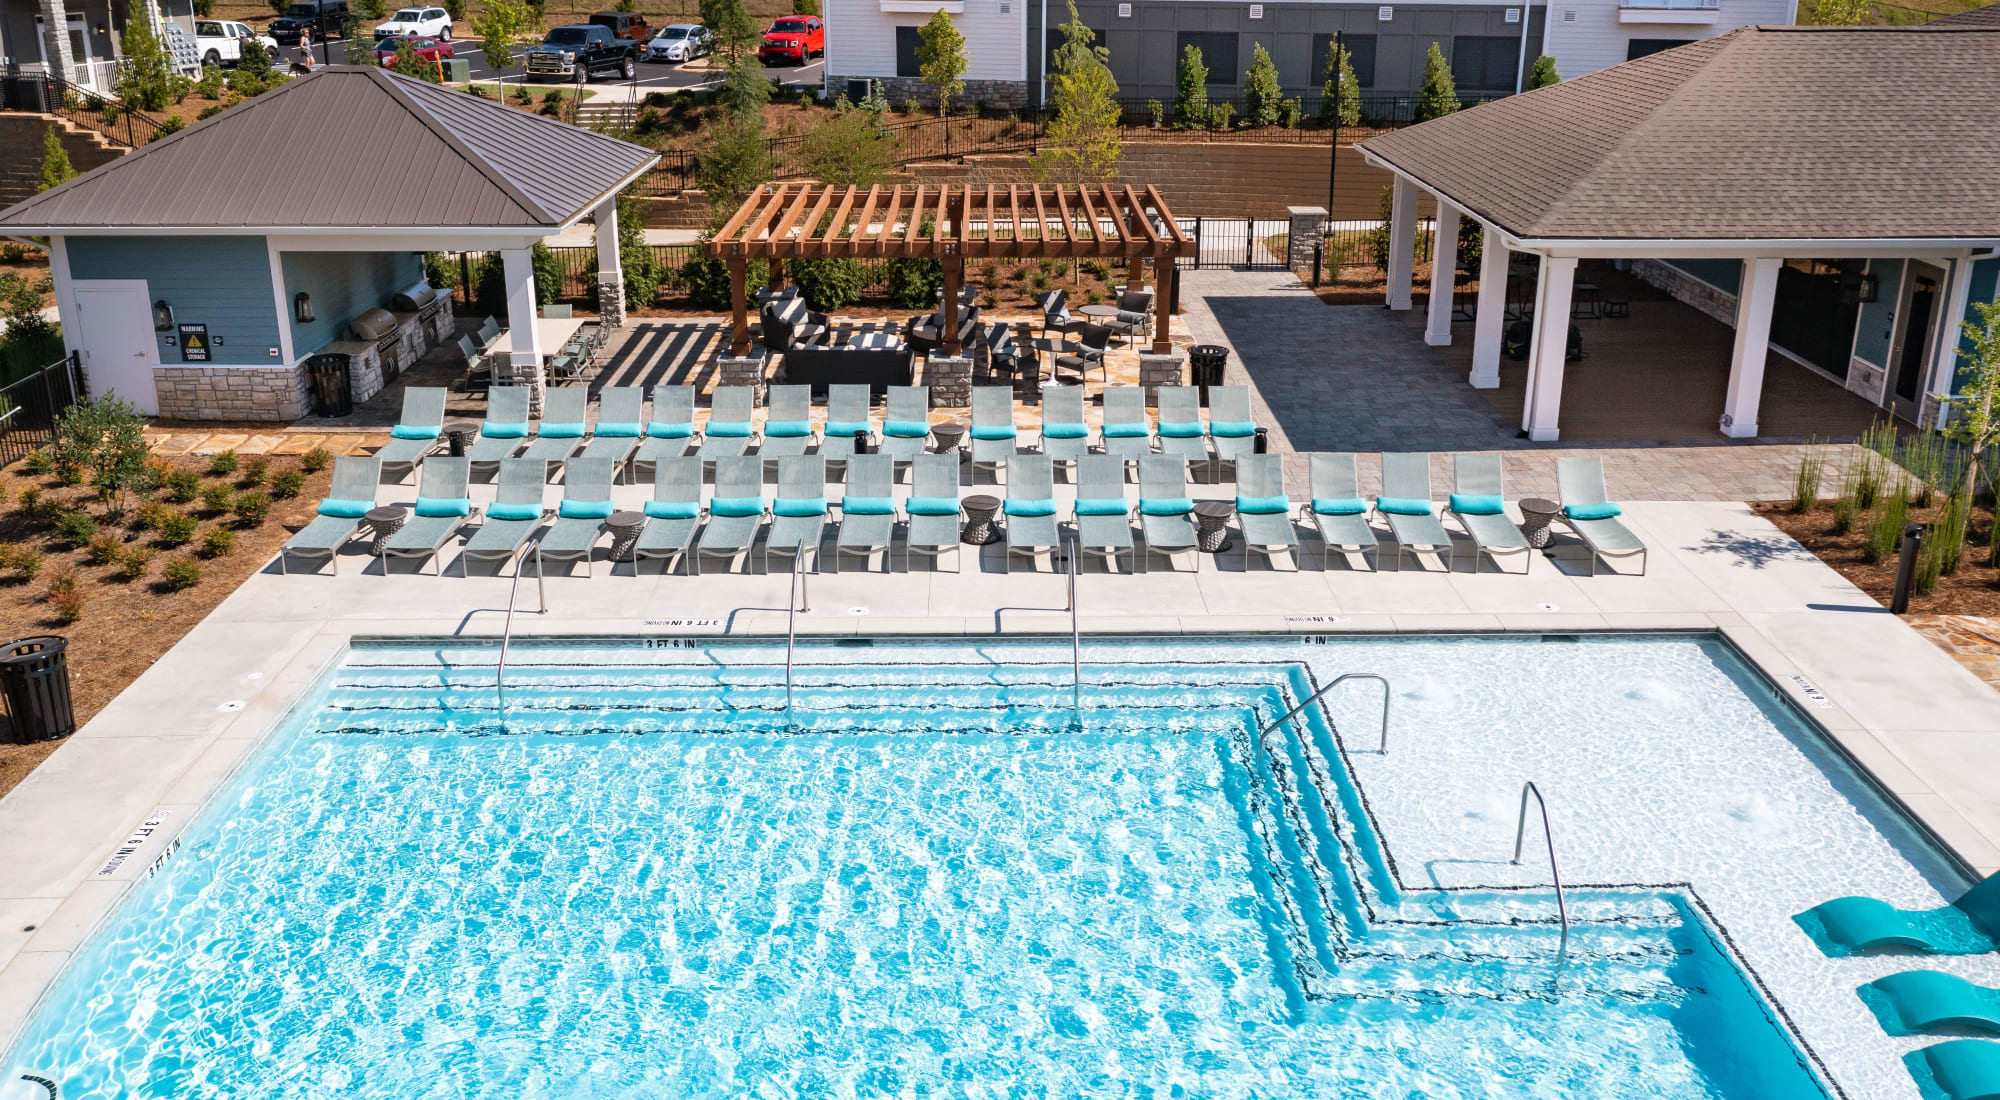 Apartments at The Crest at Flowery Branch in Flowery Branch, Georgia